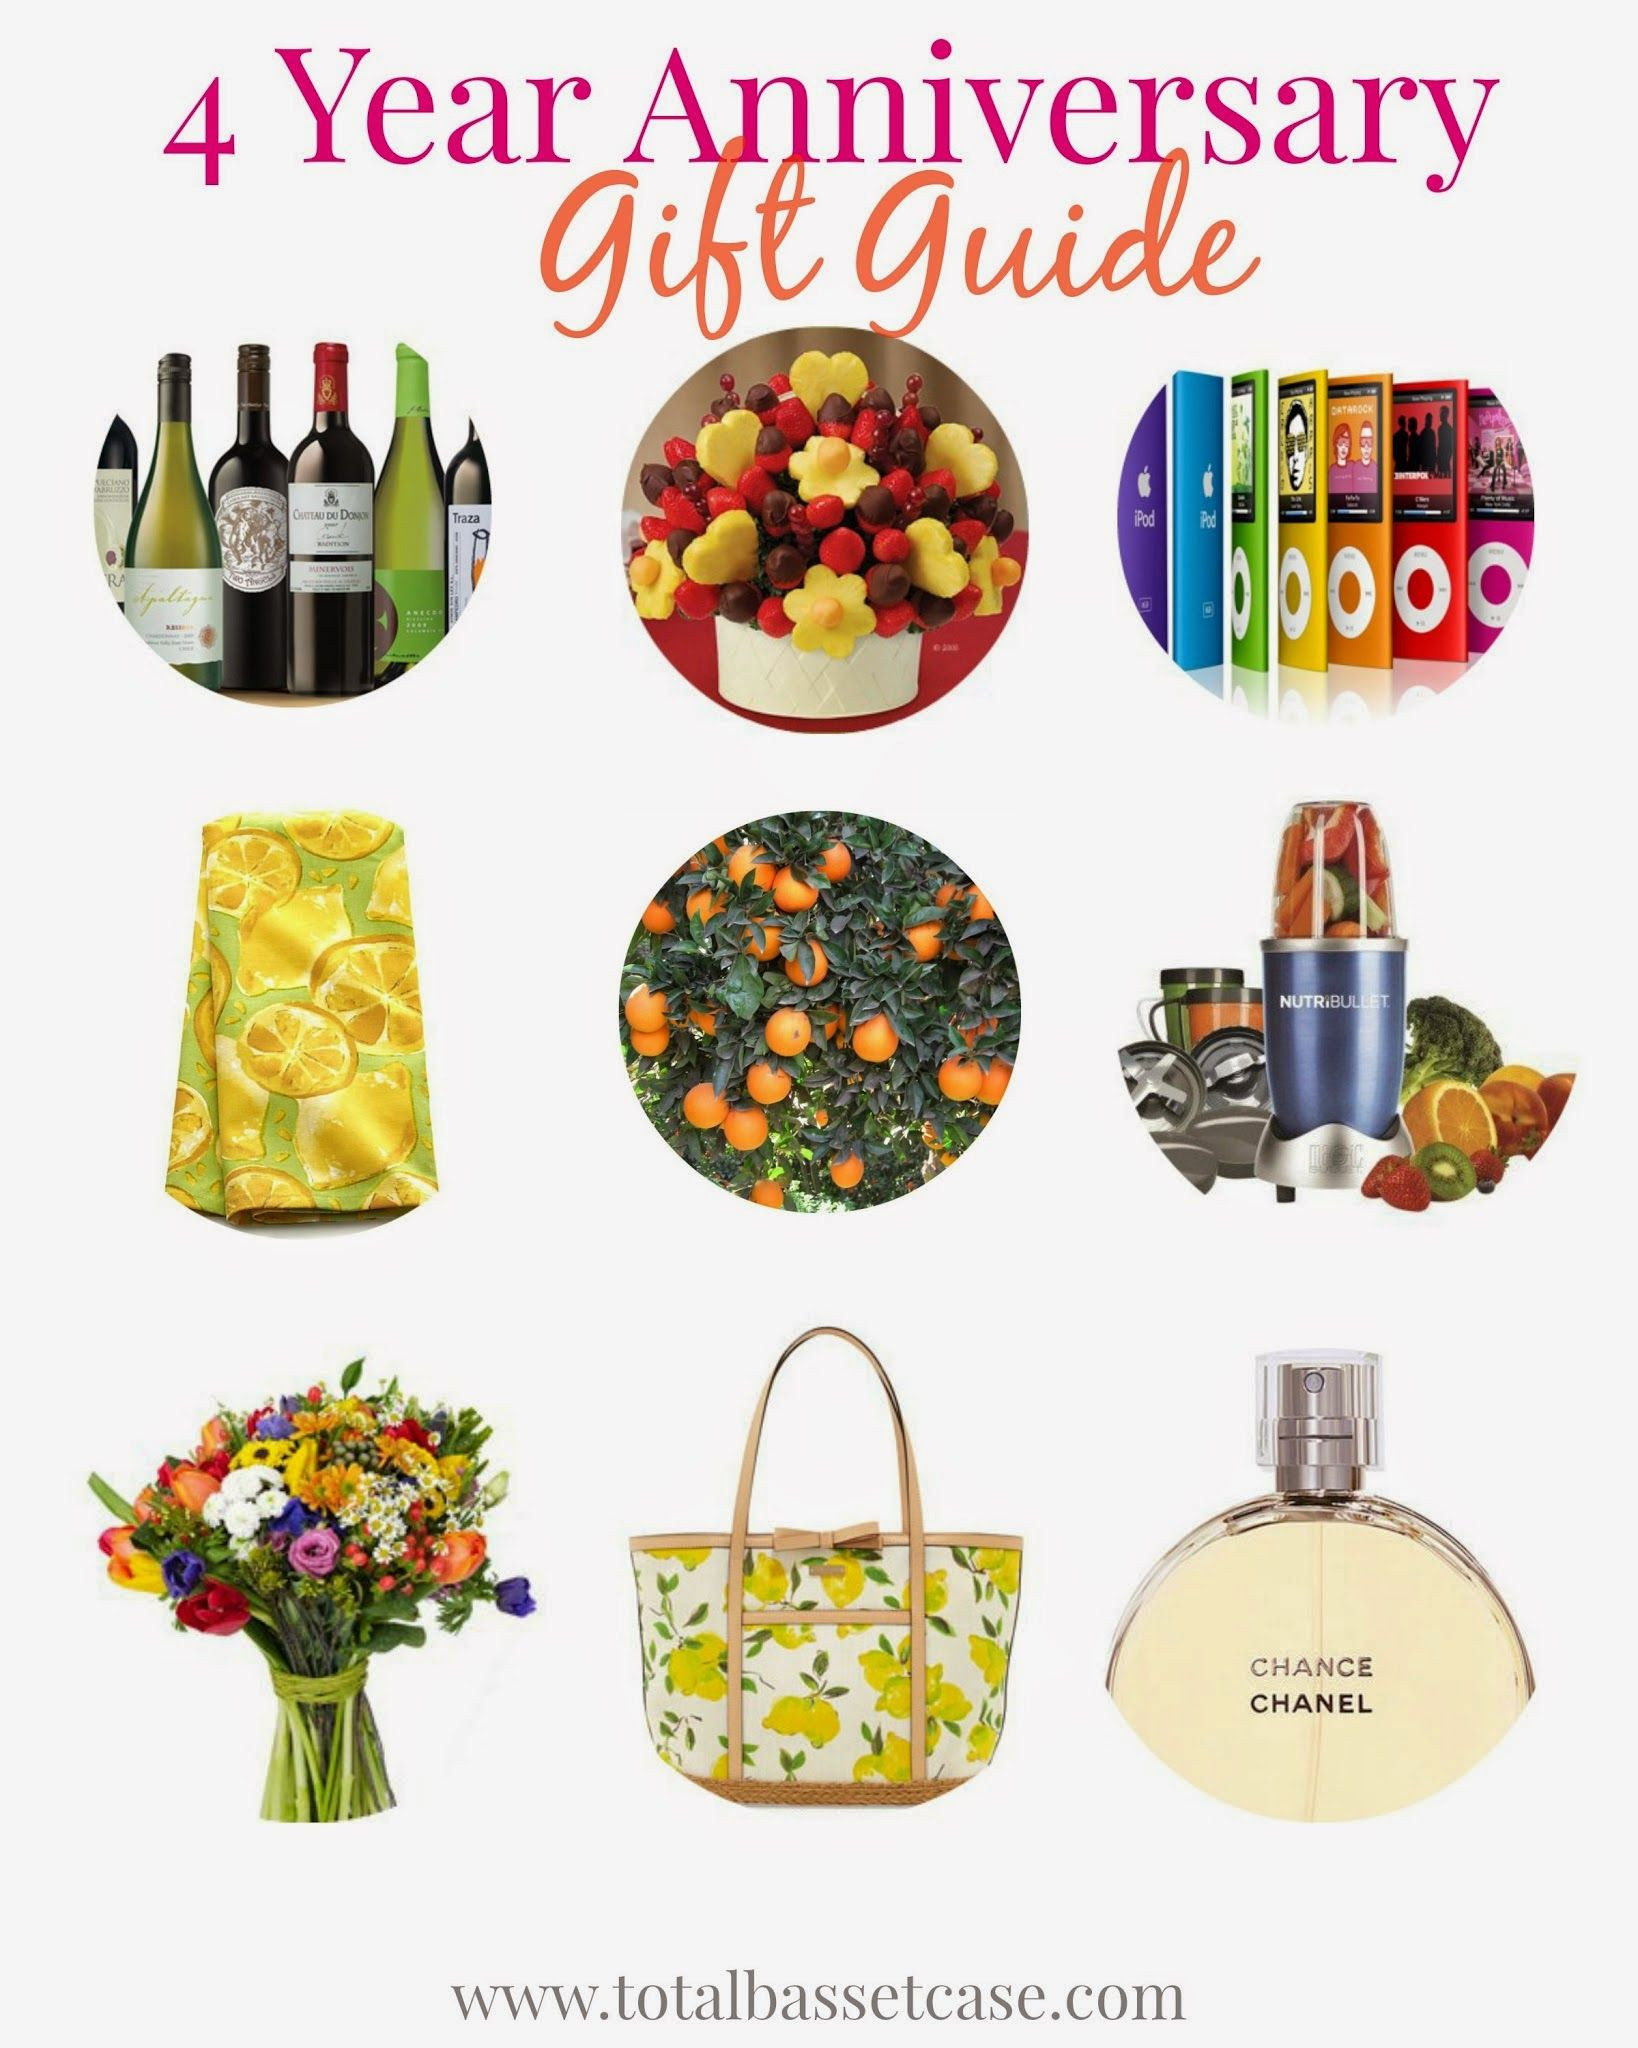 4Th Wedding Anniversary Gift Ideas For Him  Fruit & Flowers 4 Year Anniversary Gift Guide With